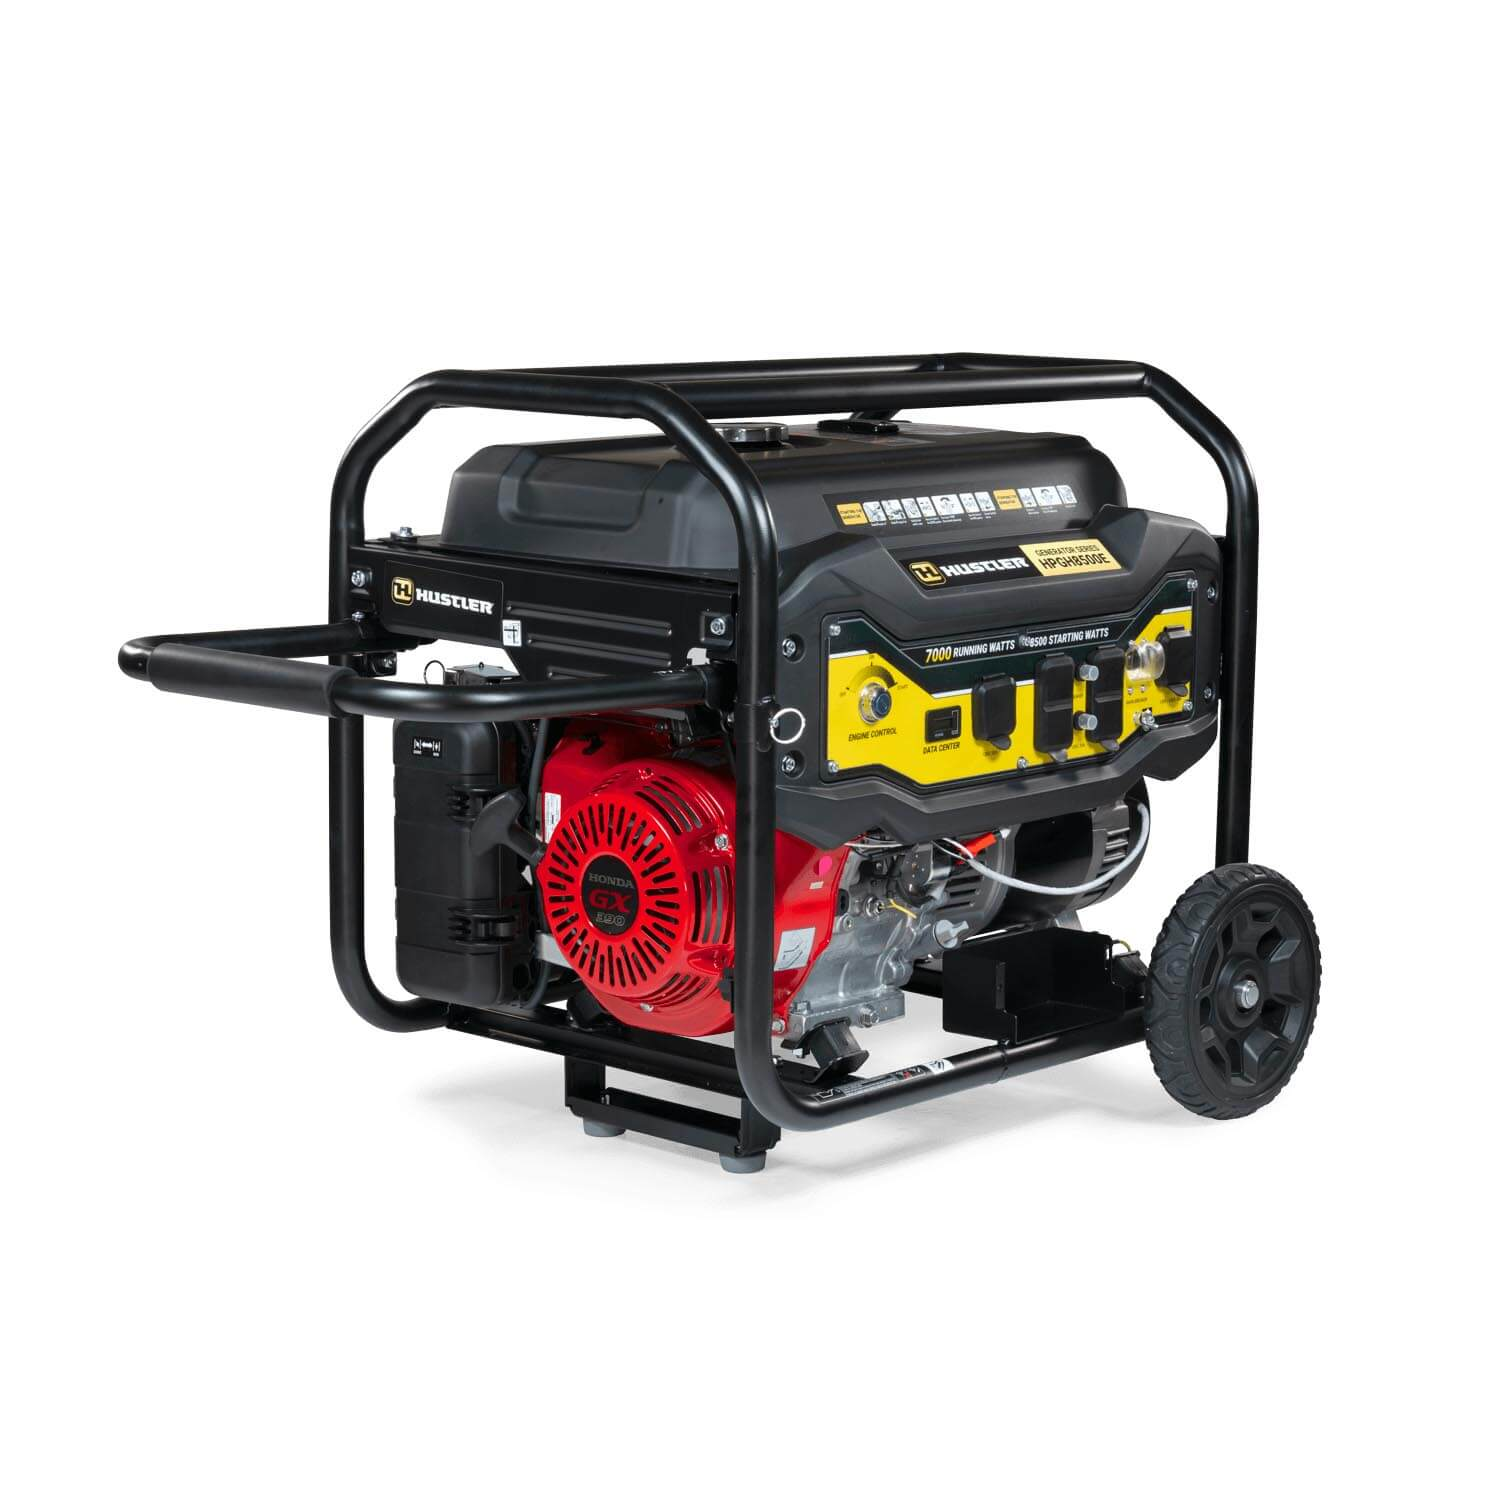 Image of front three quarters of a generator